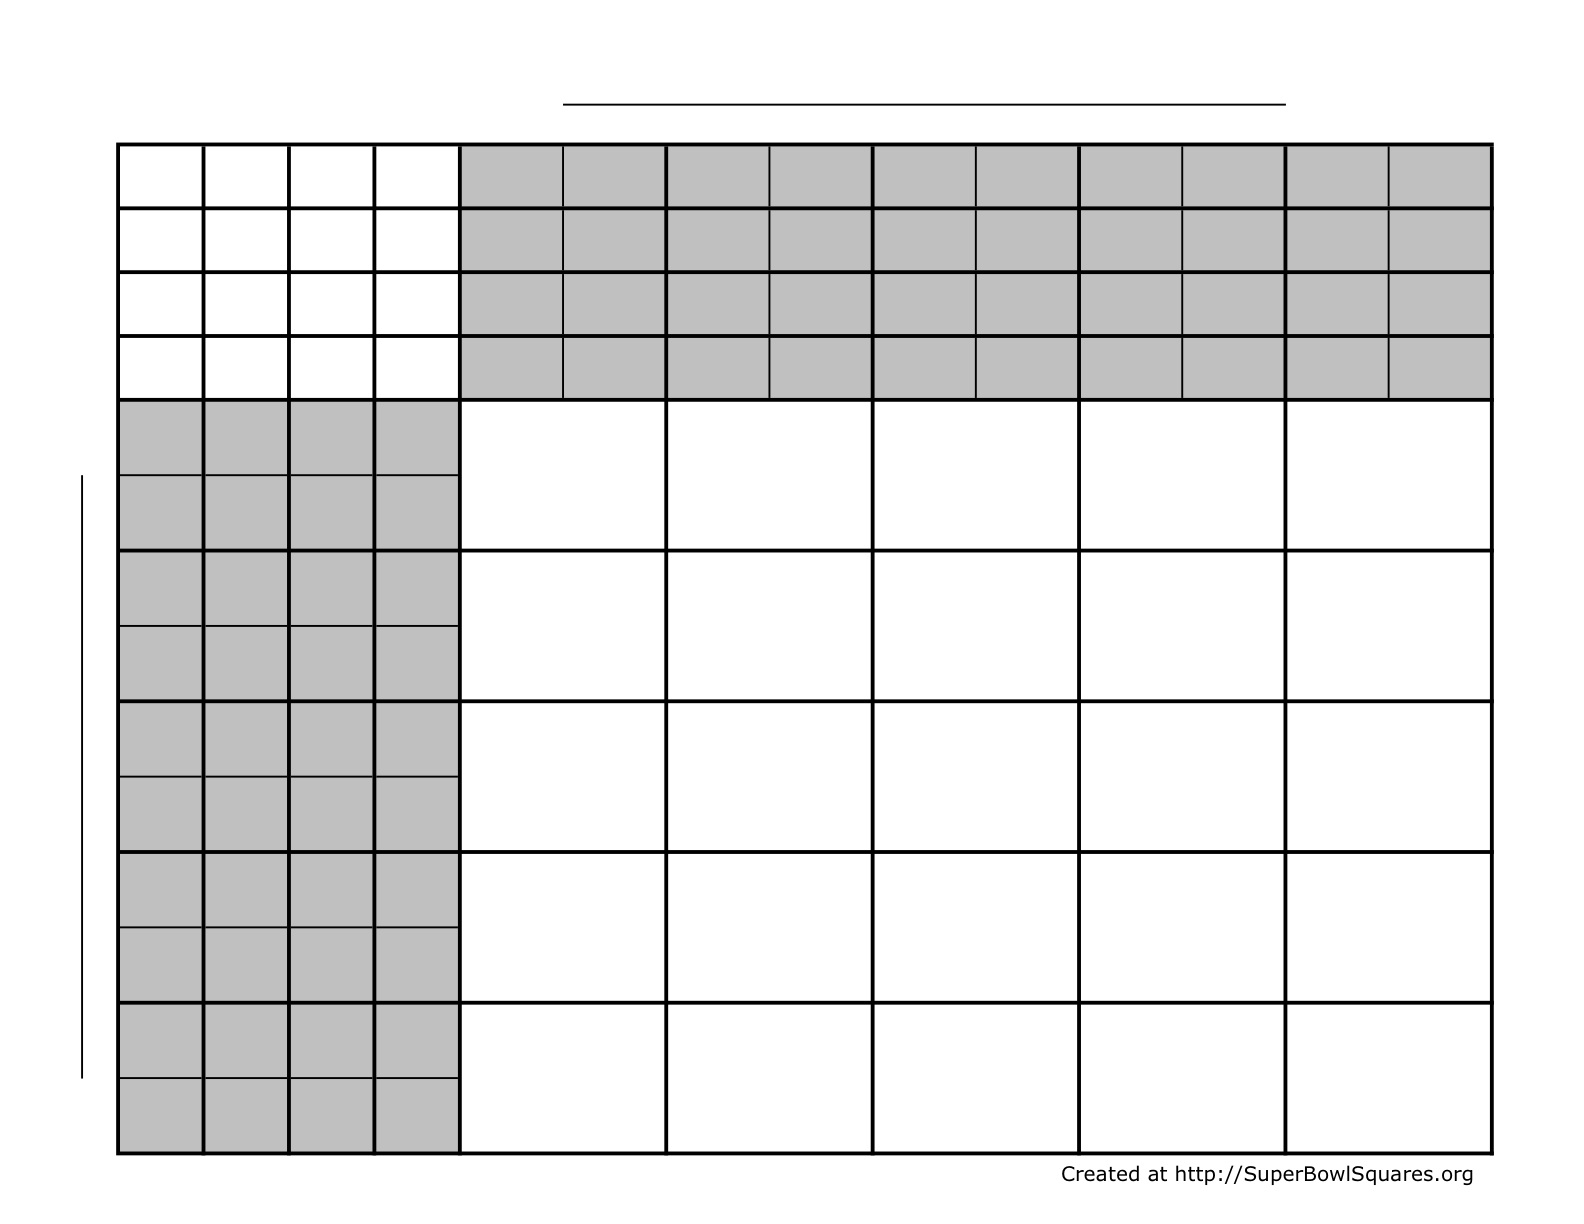 photo about Free Printable Super Bowl Squares Template titled Soccer Squares Tremendous Bowl Squares Enjoy Soccer